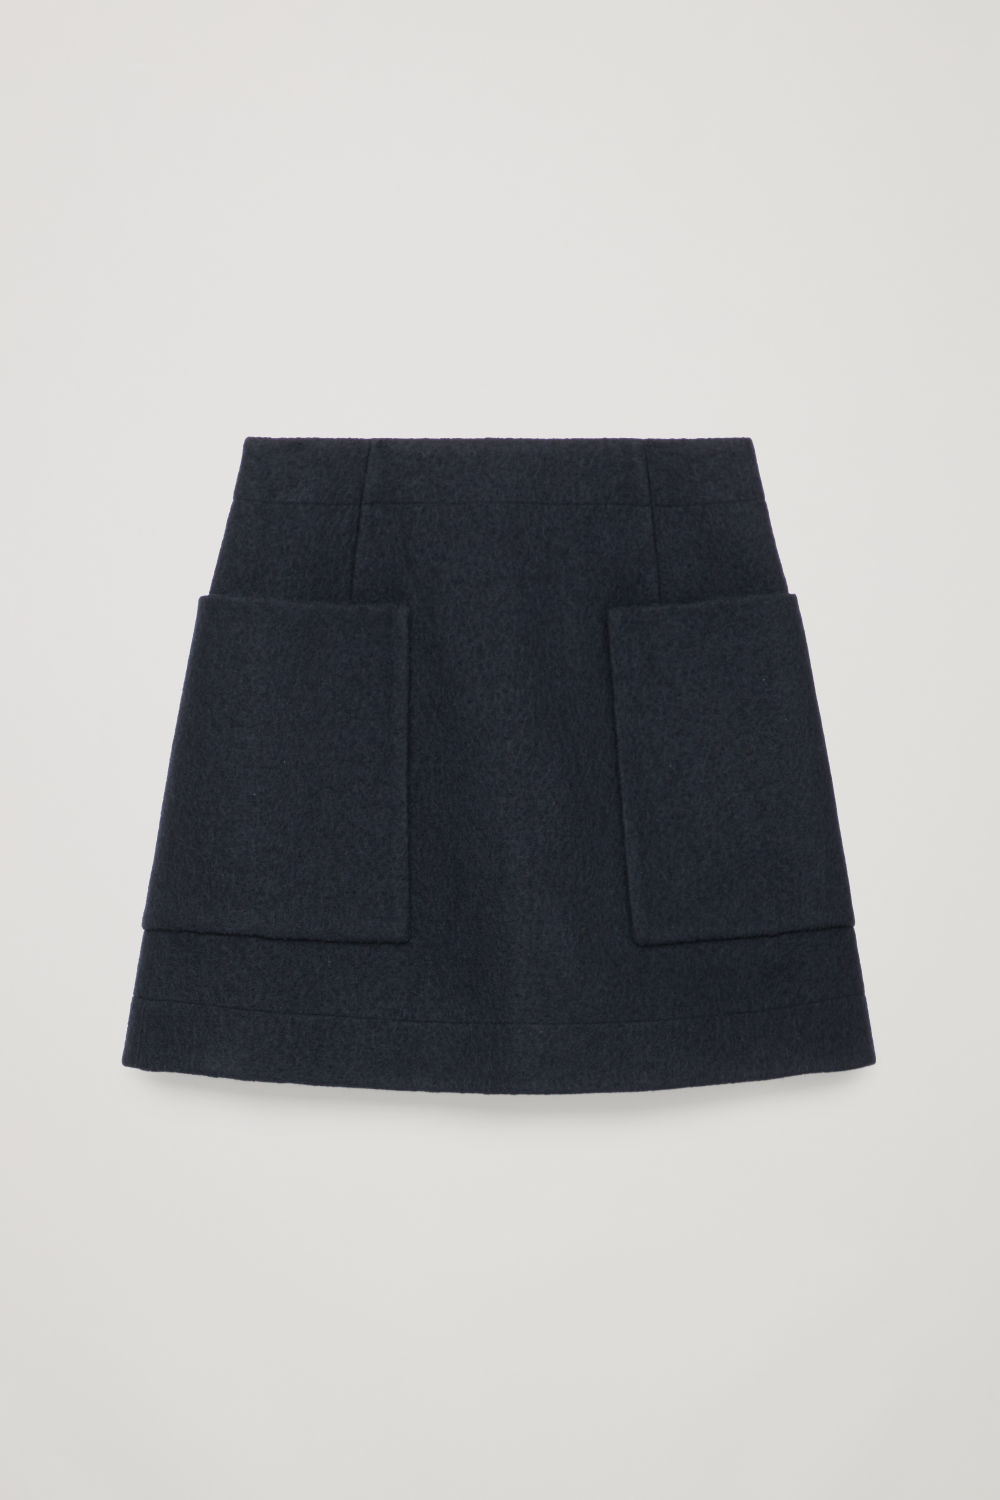 BOILED WOOL A-LINE SKIRT